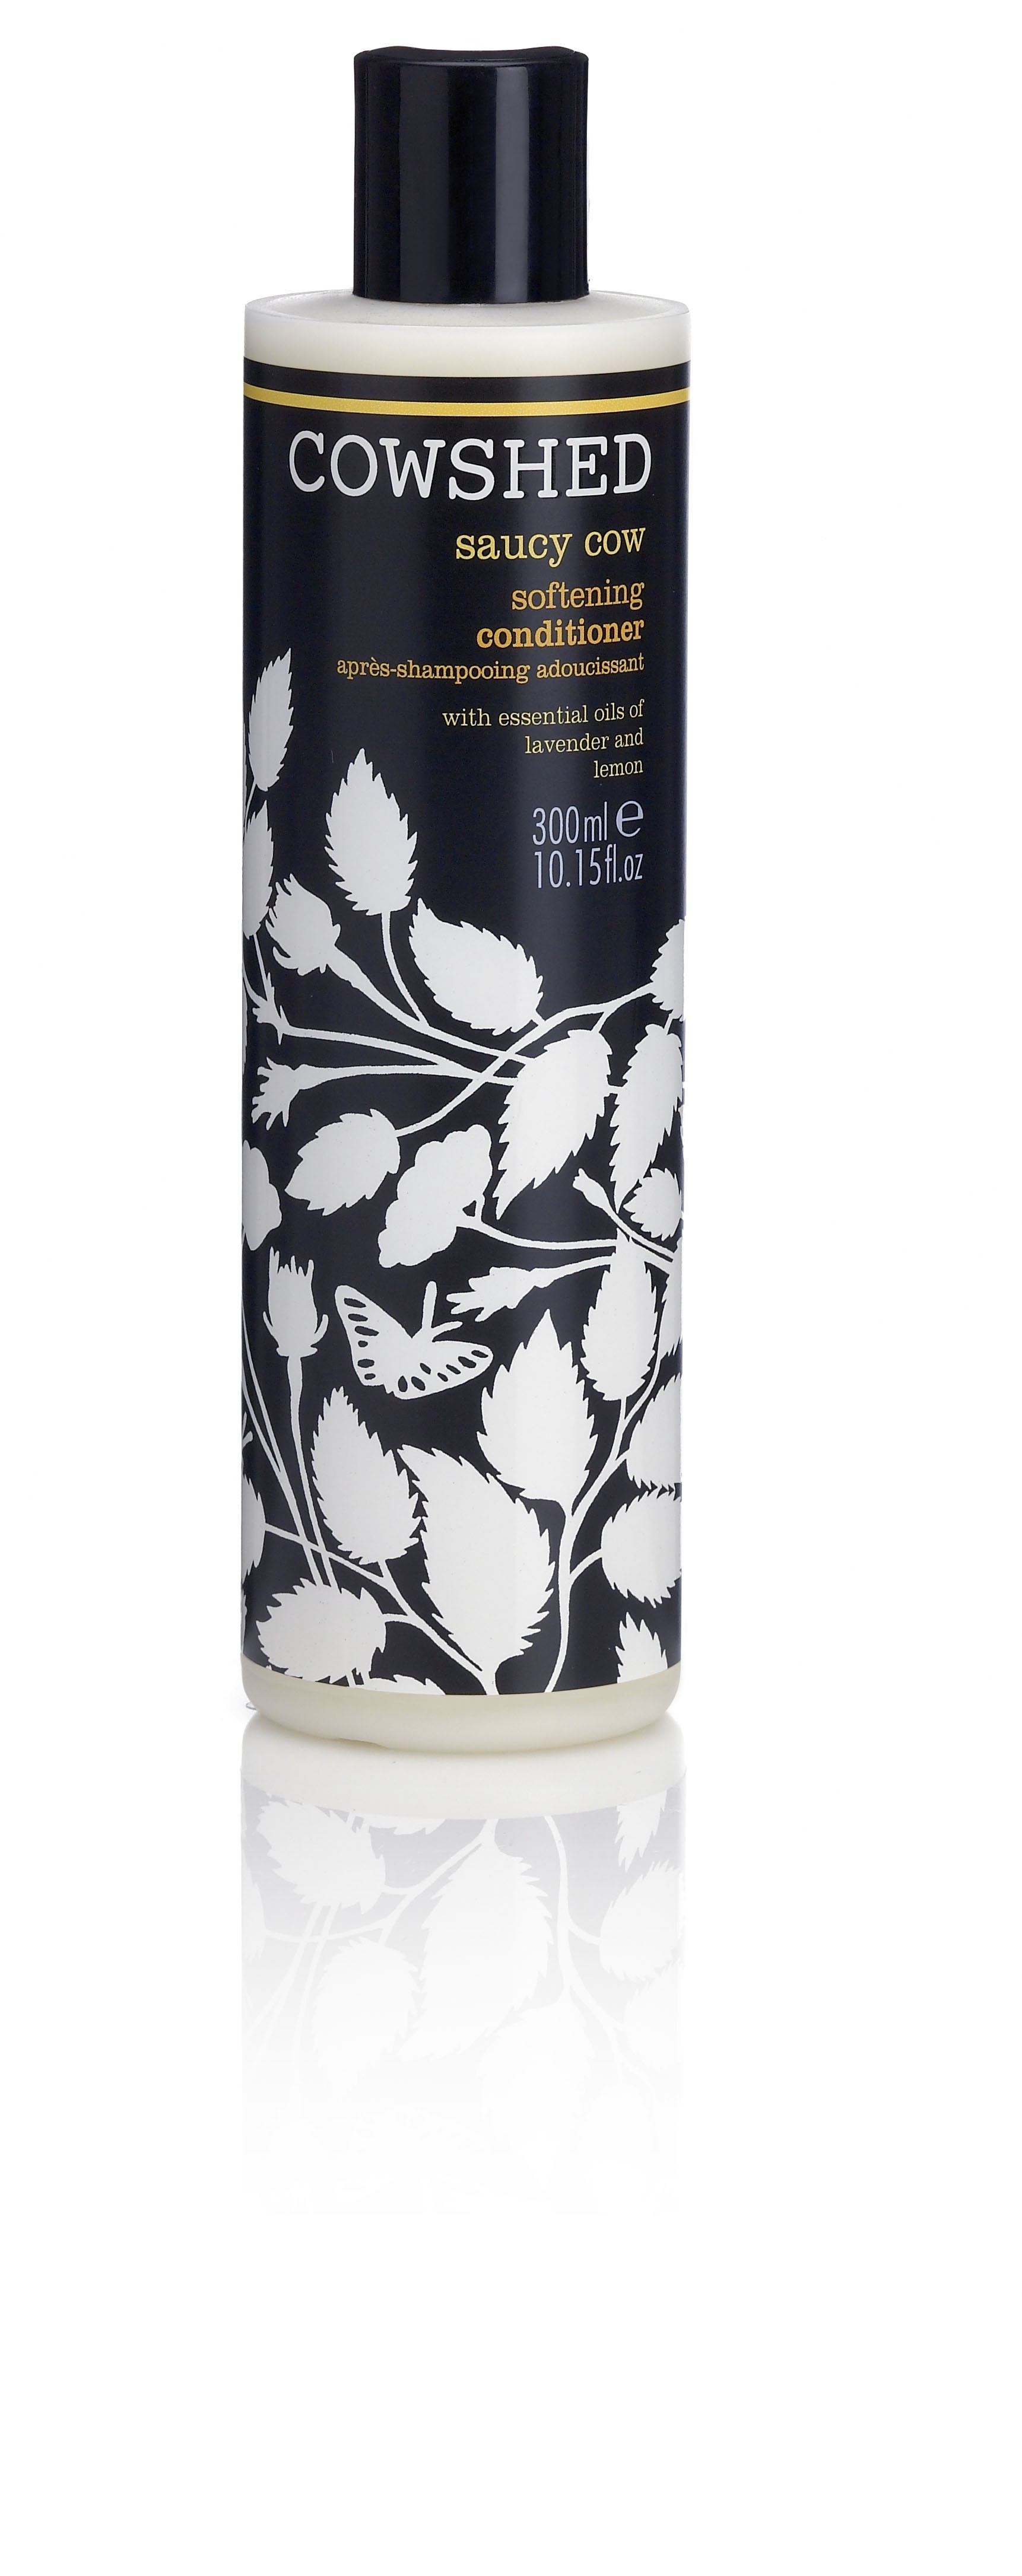 Image of Cowshed Saucy Cow Softening Conditioner 300 ml.